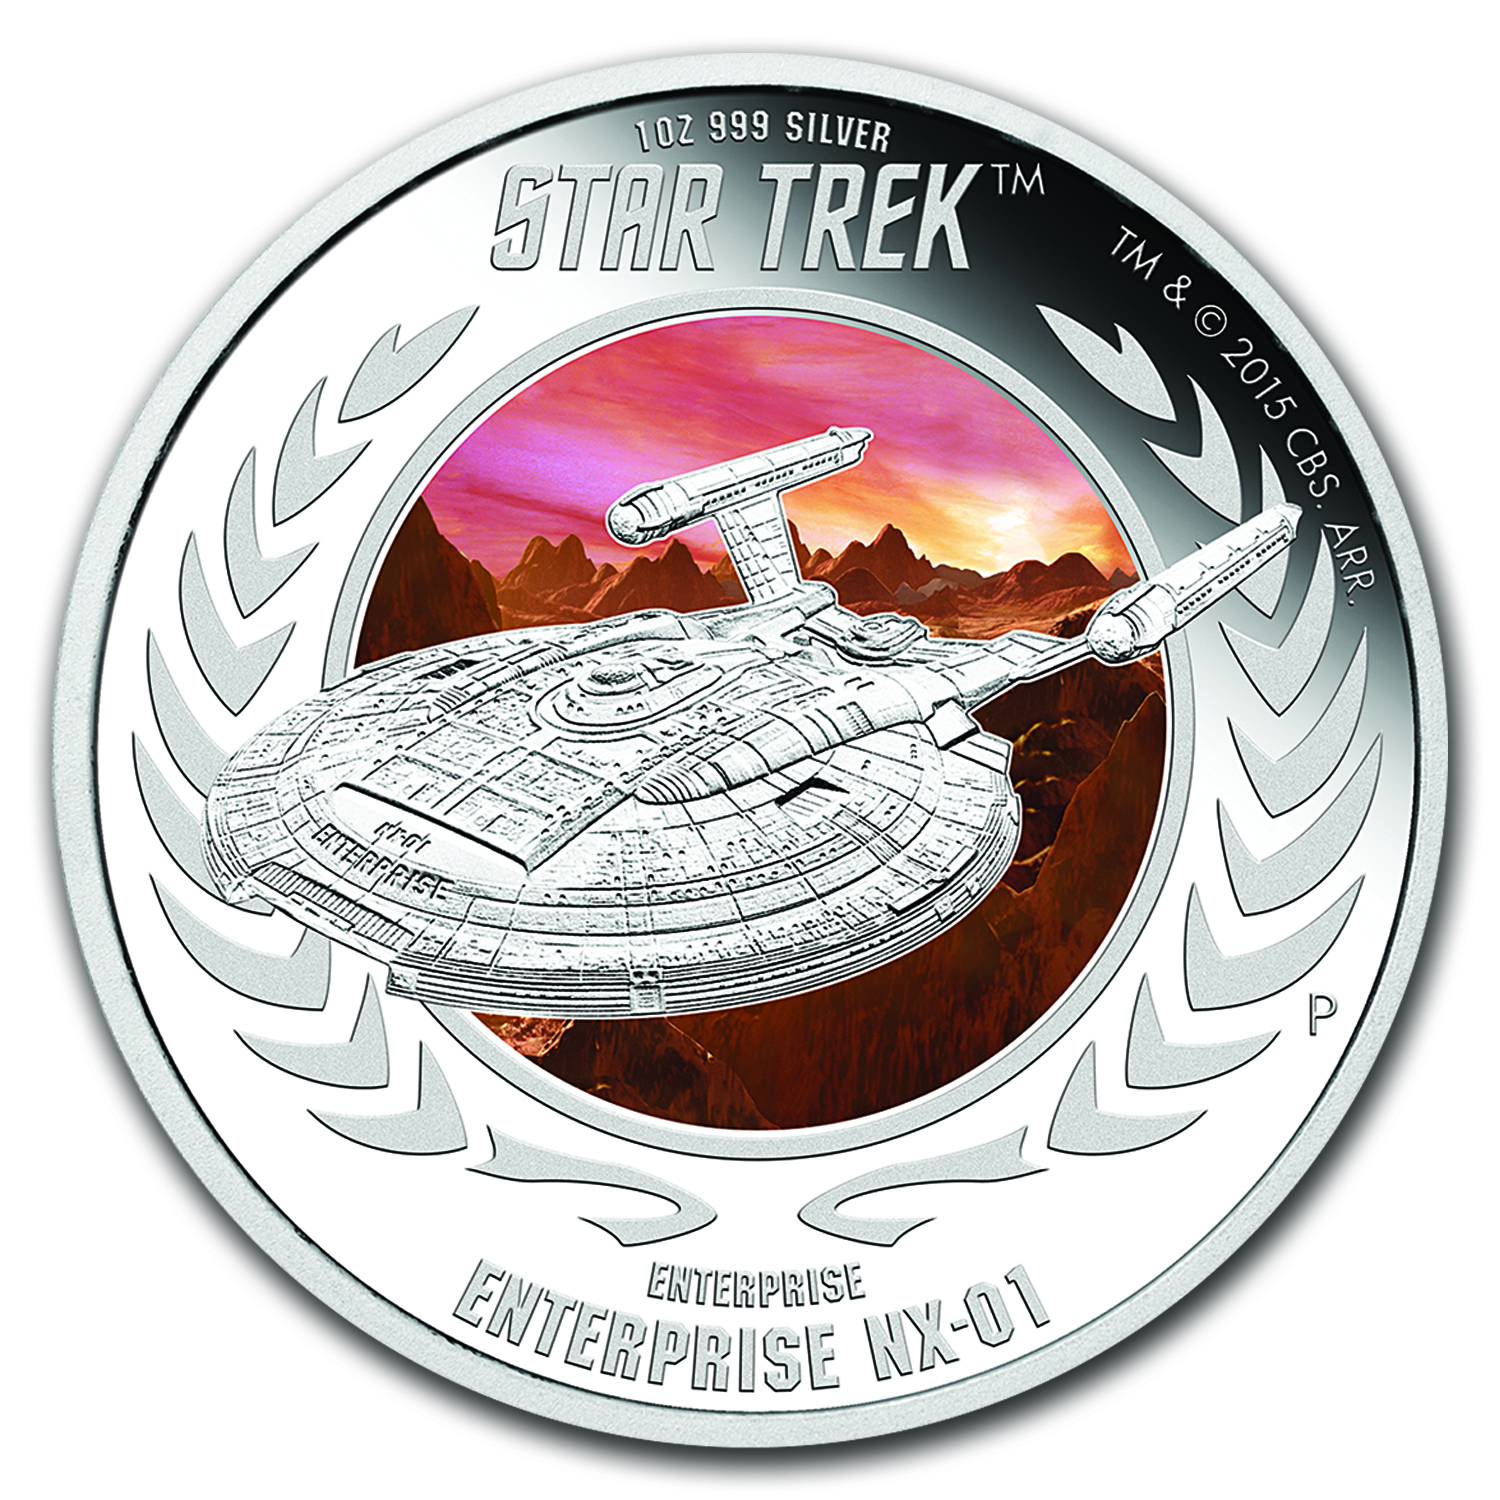 2015 Tuvalu 1 oz Silver Star Trek Enterprise NX-01 Proof (Color)